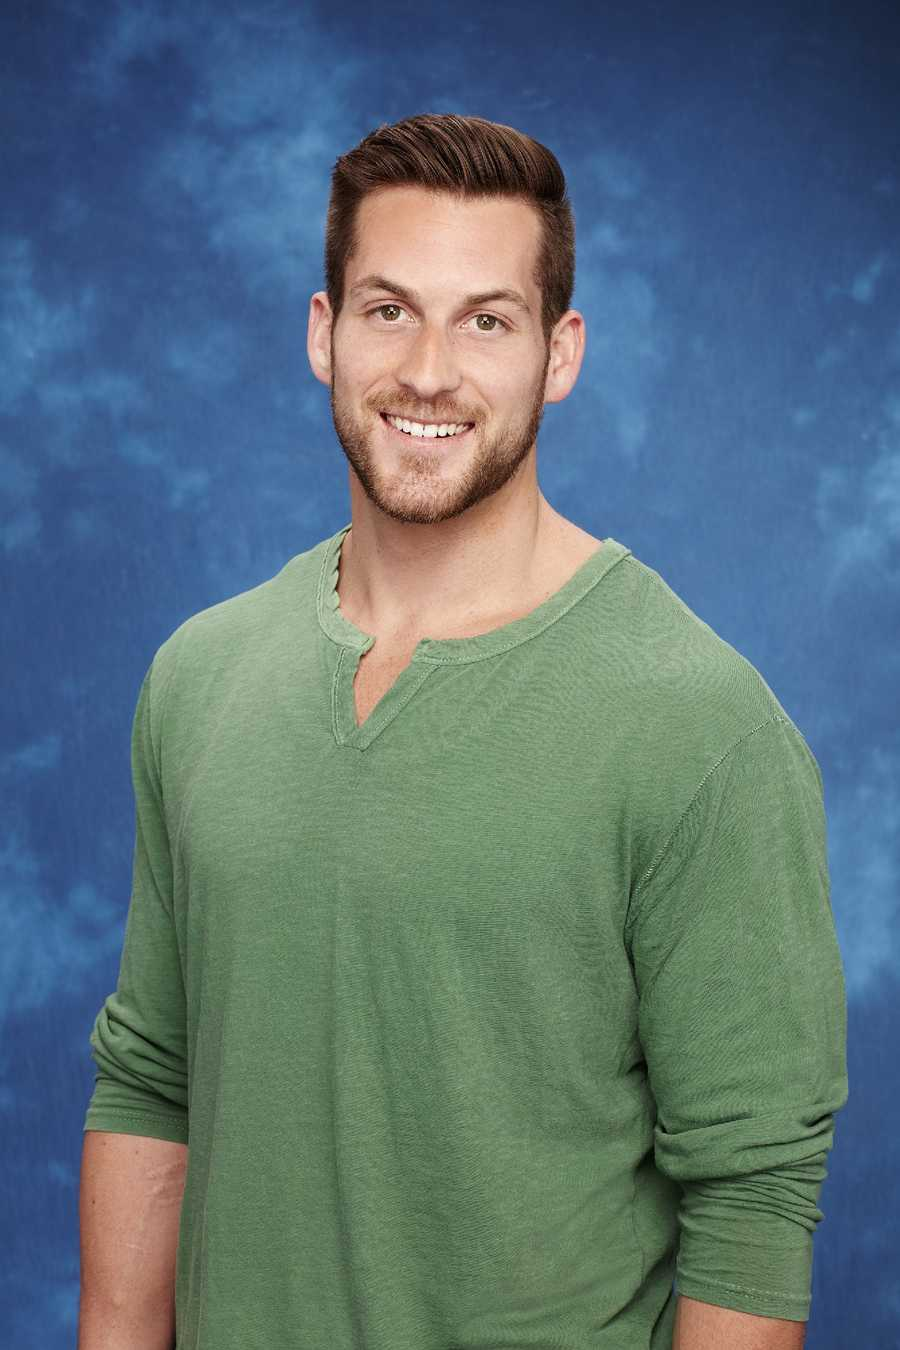 """A 6'3"""" medical sales rep, Chase's ideal woman has an """"athletic build, natural beauty and perfect teeth,"""" making him a perfect for """"The Bachelorette"""" (or """"Bachelor in Paradise""""). But there's more: It's possible that Chase has a deeper backstory with his family, given his response to the question about who he'd like to be for a day: """"My dad, to get a better understanding of the decisions he made."""""""